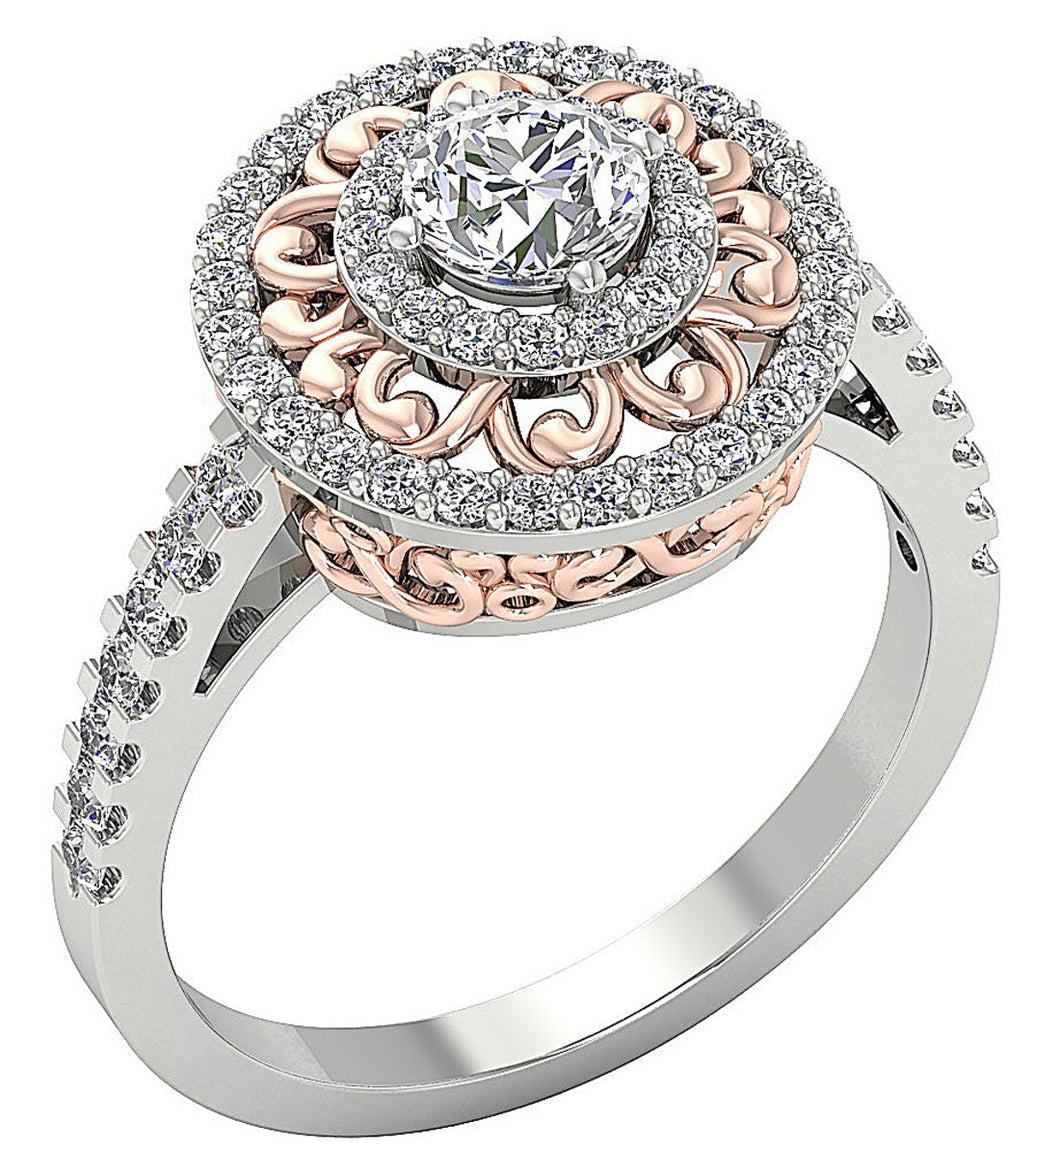 Designer Solitaire Engagement Ring 14K Gold-SR-927-5